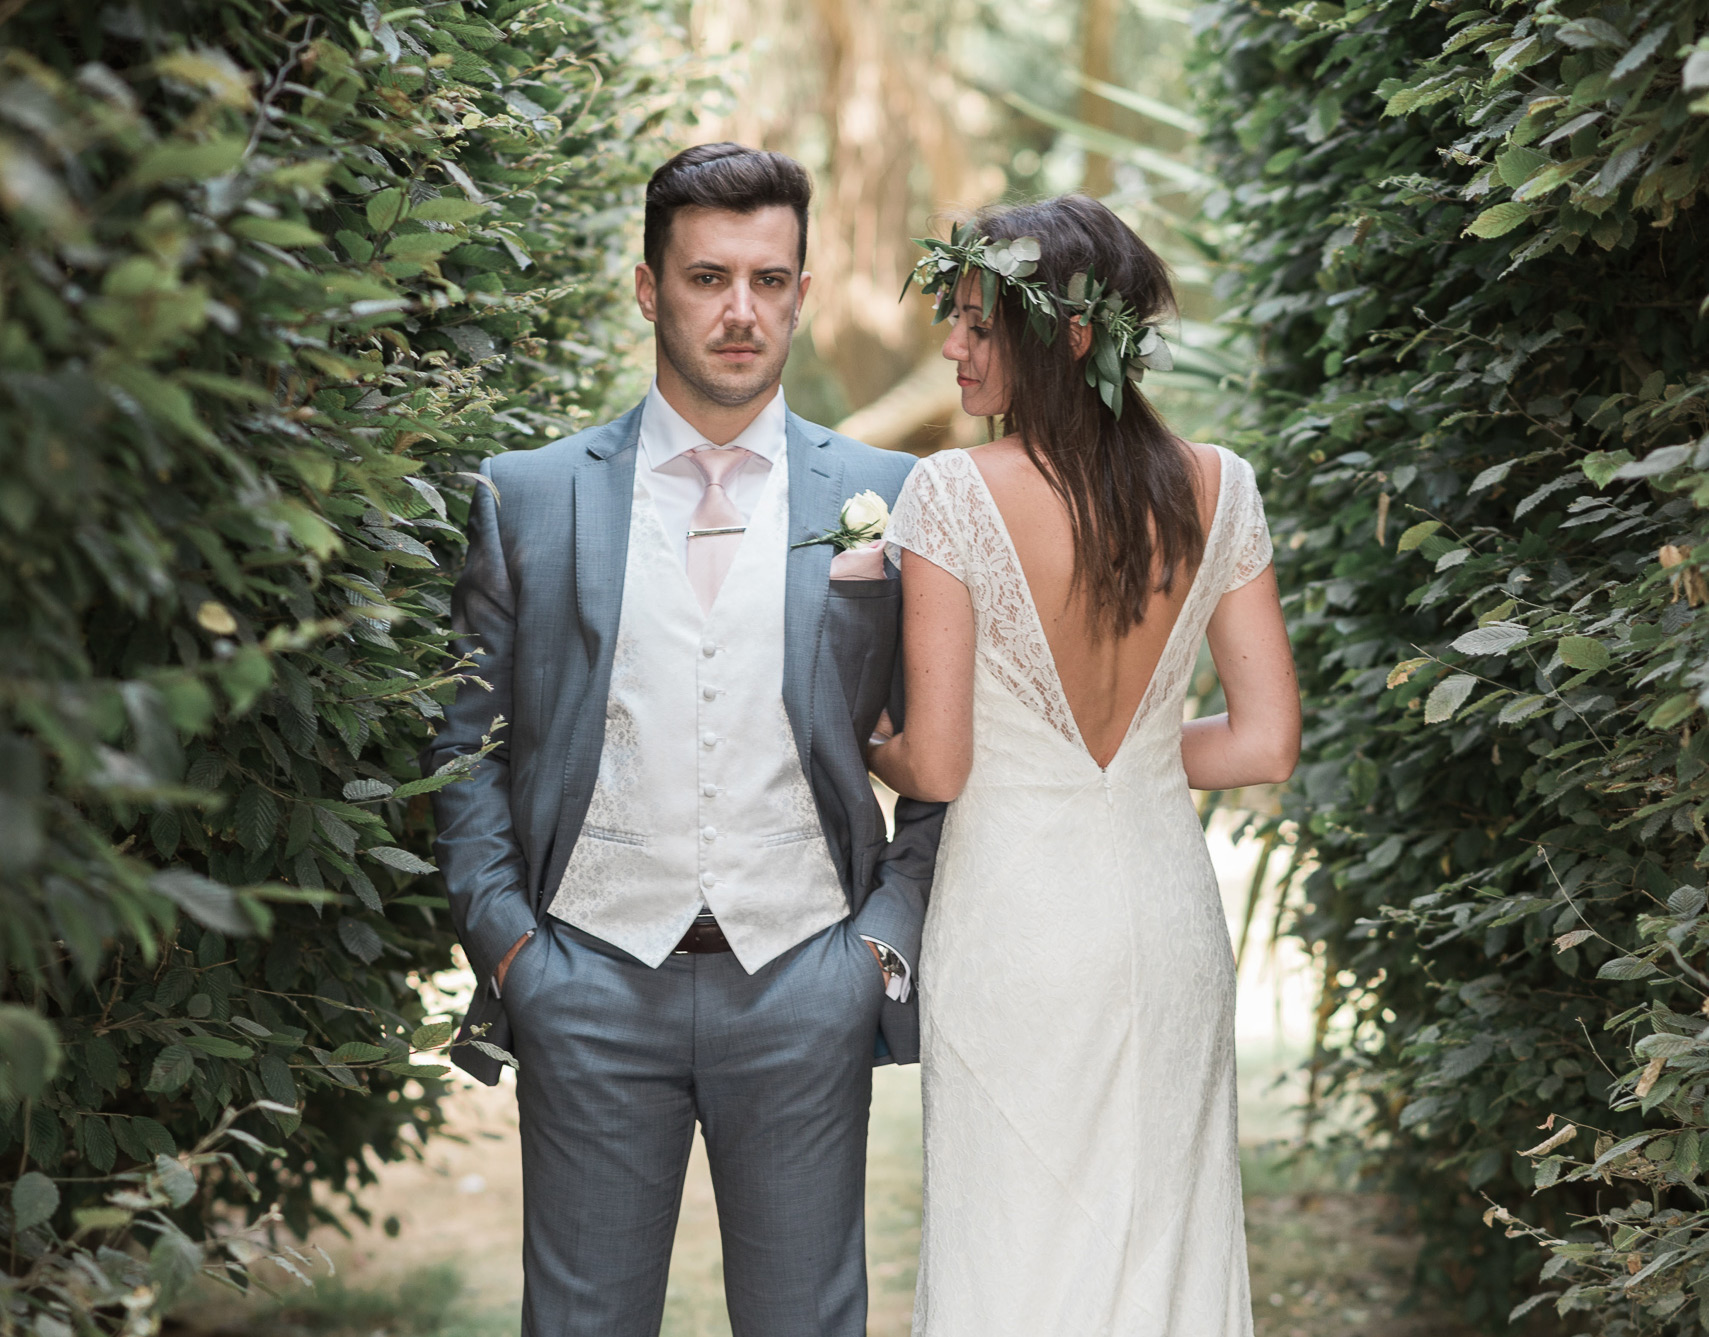 wedding-photography-chichester-bride-and-groom